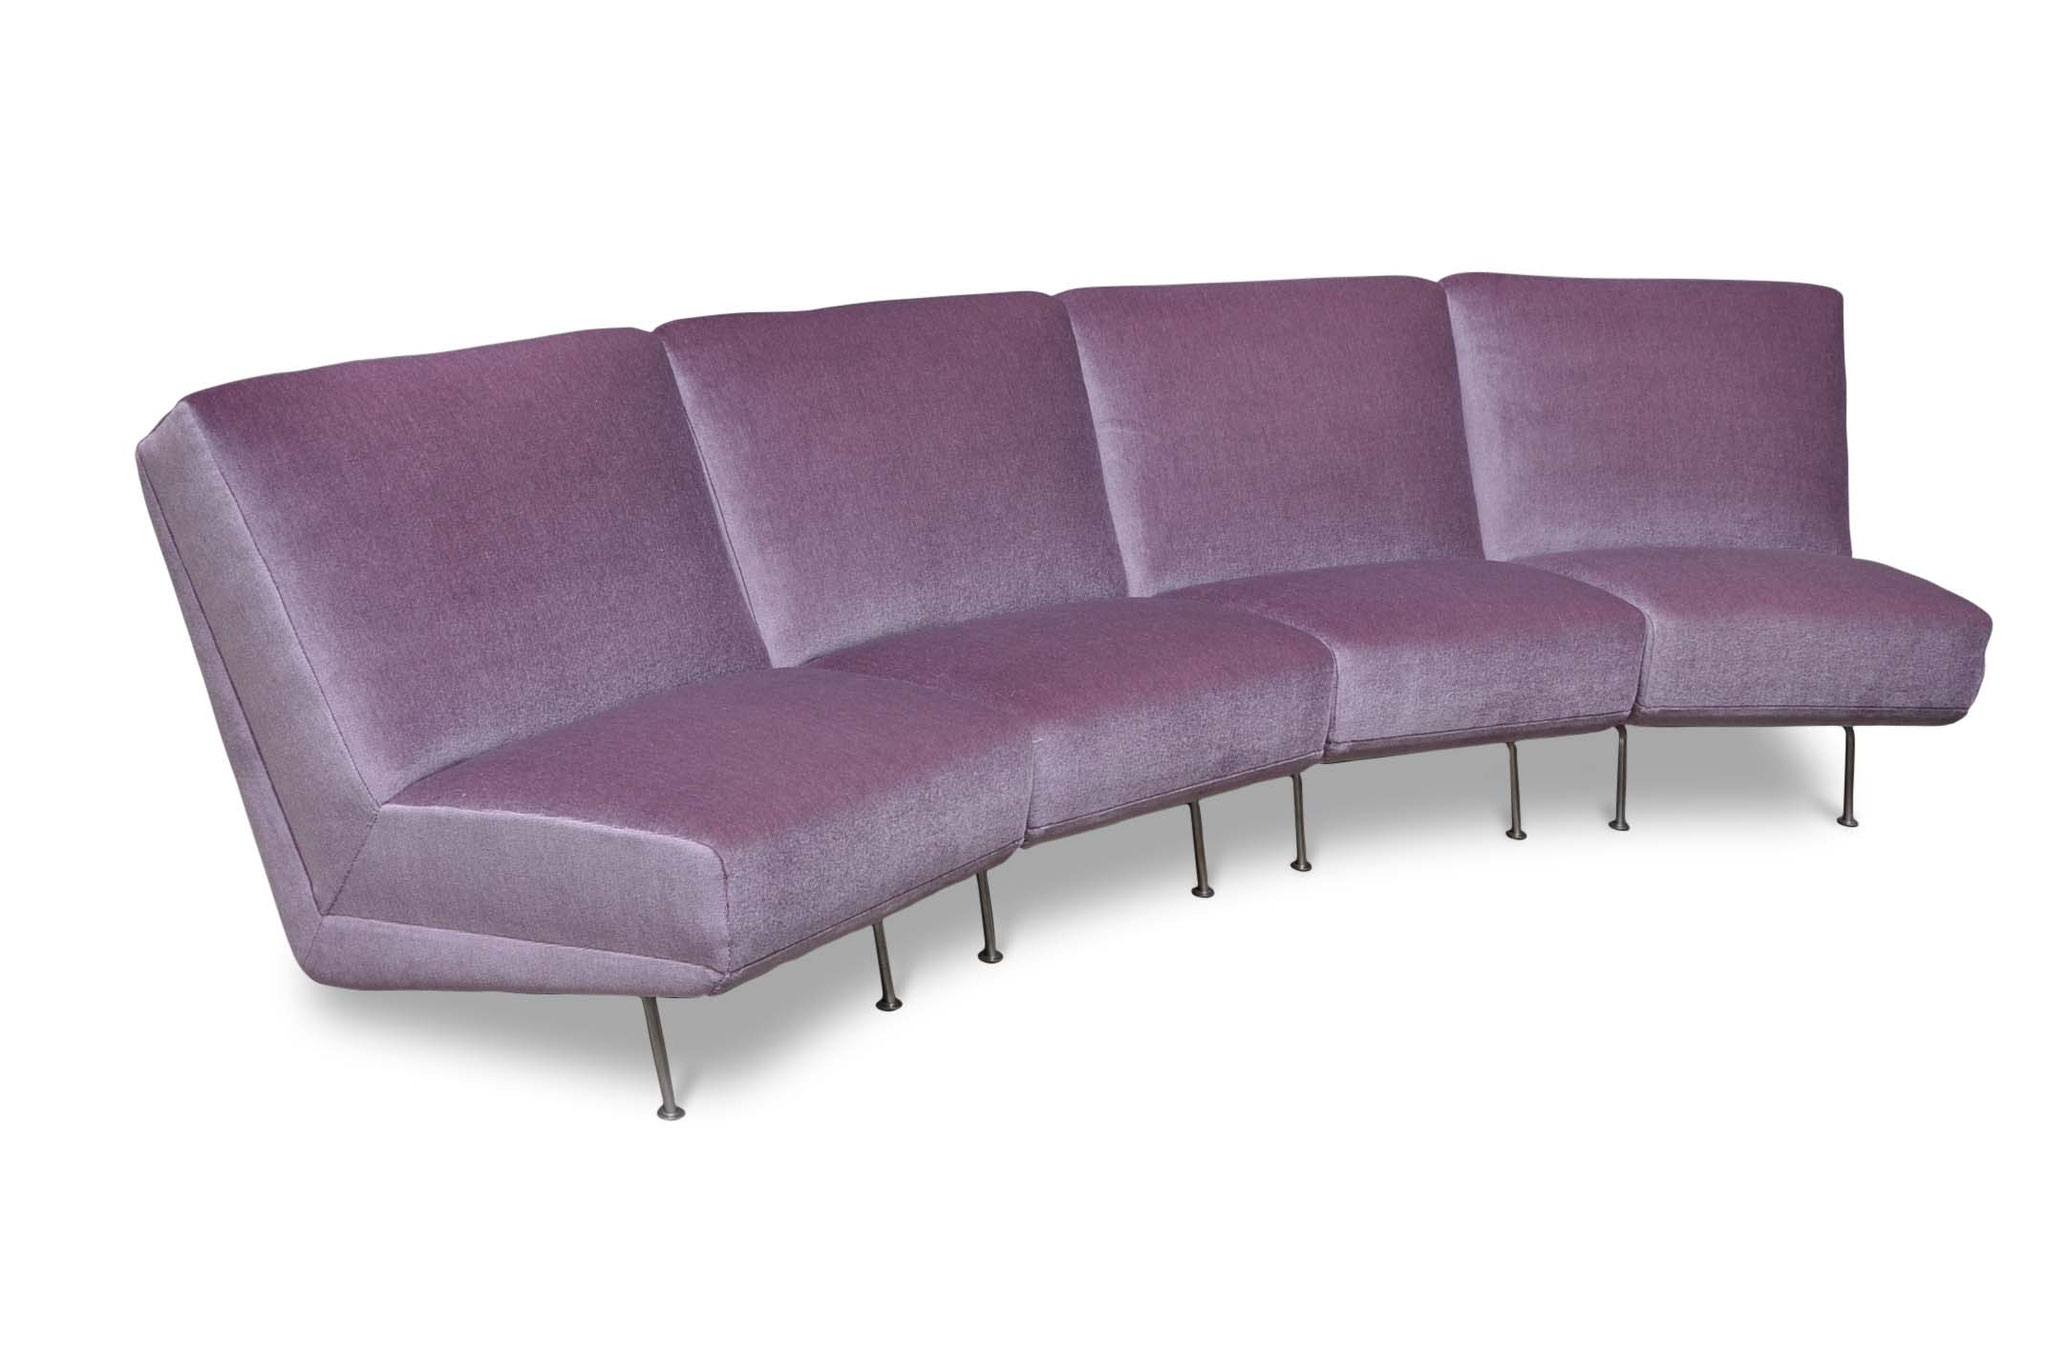 artifort theo ruth sectional sofa